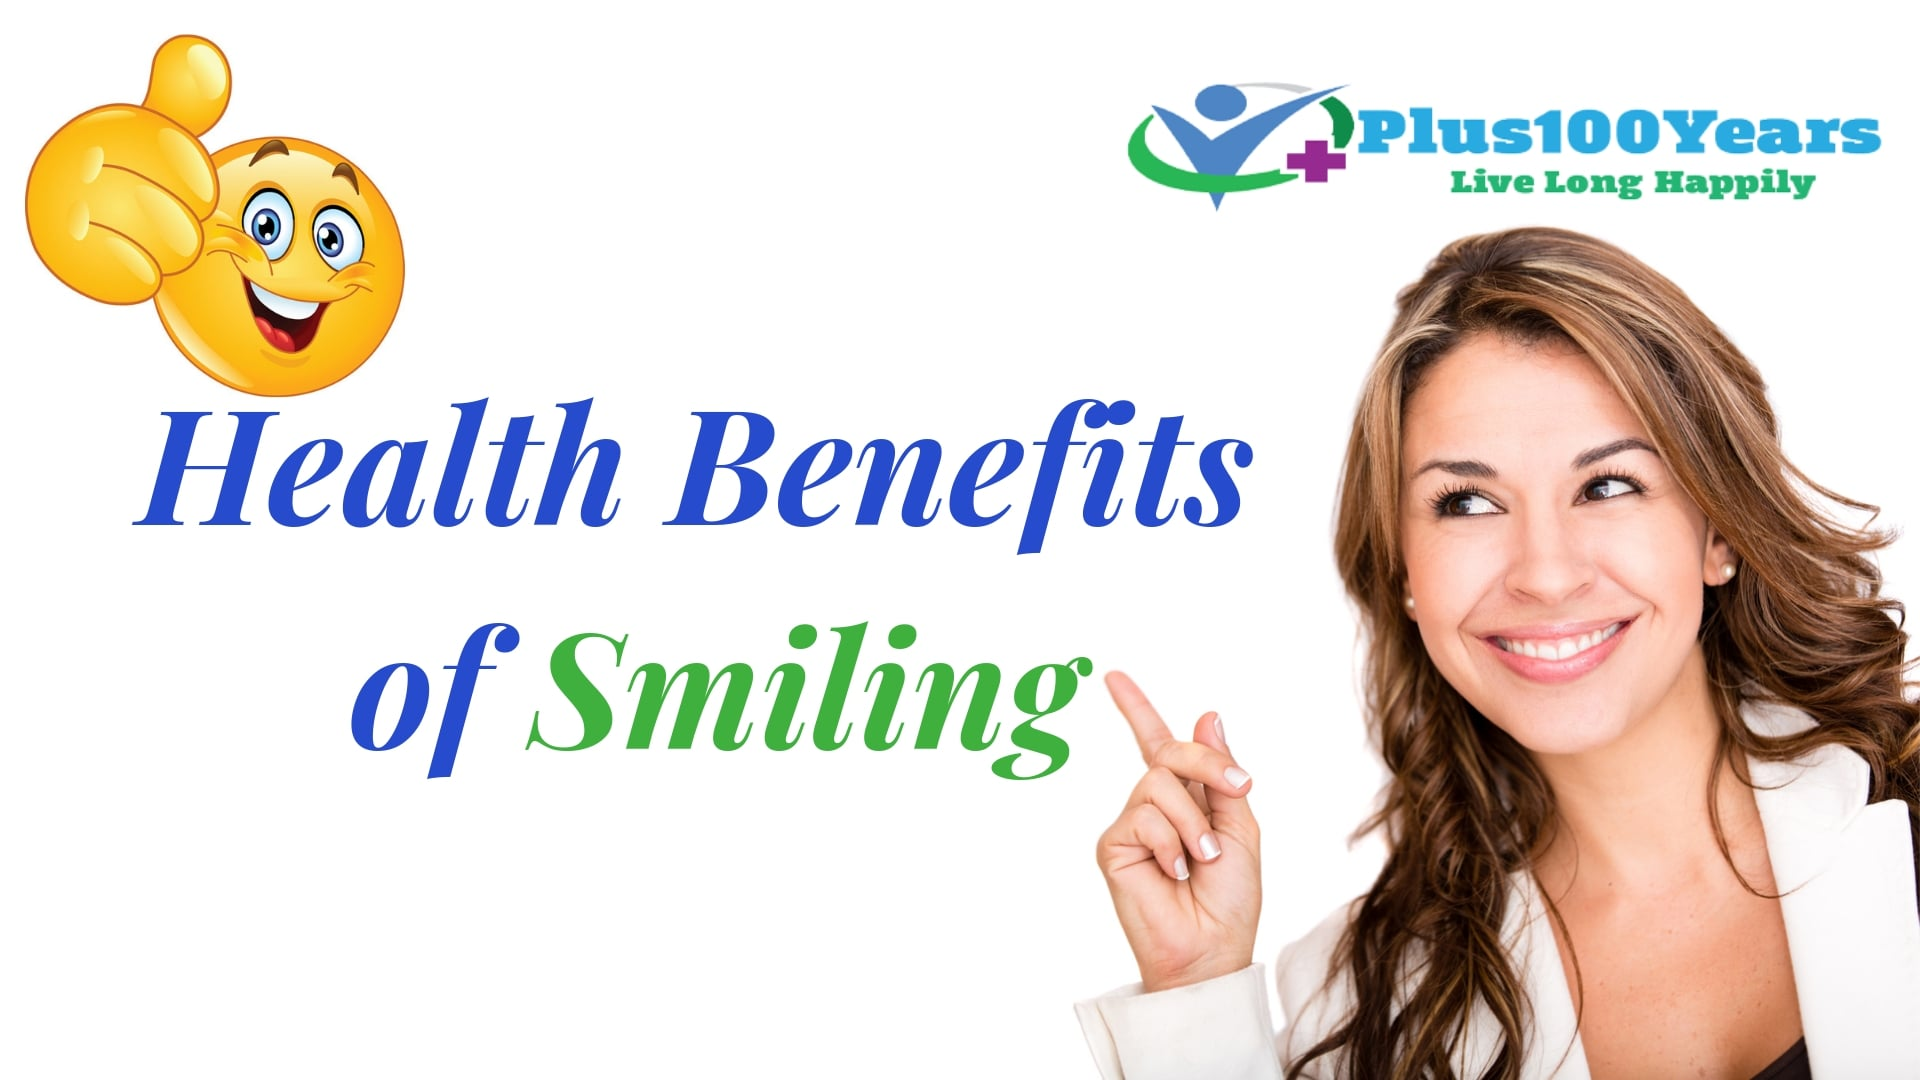 Health Benefits of Smiling – Know the Power of Smiling